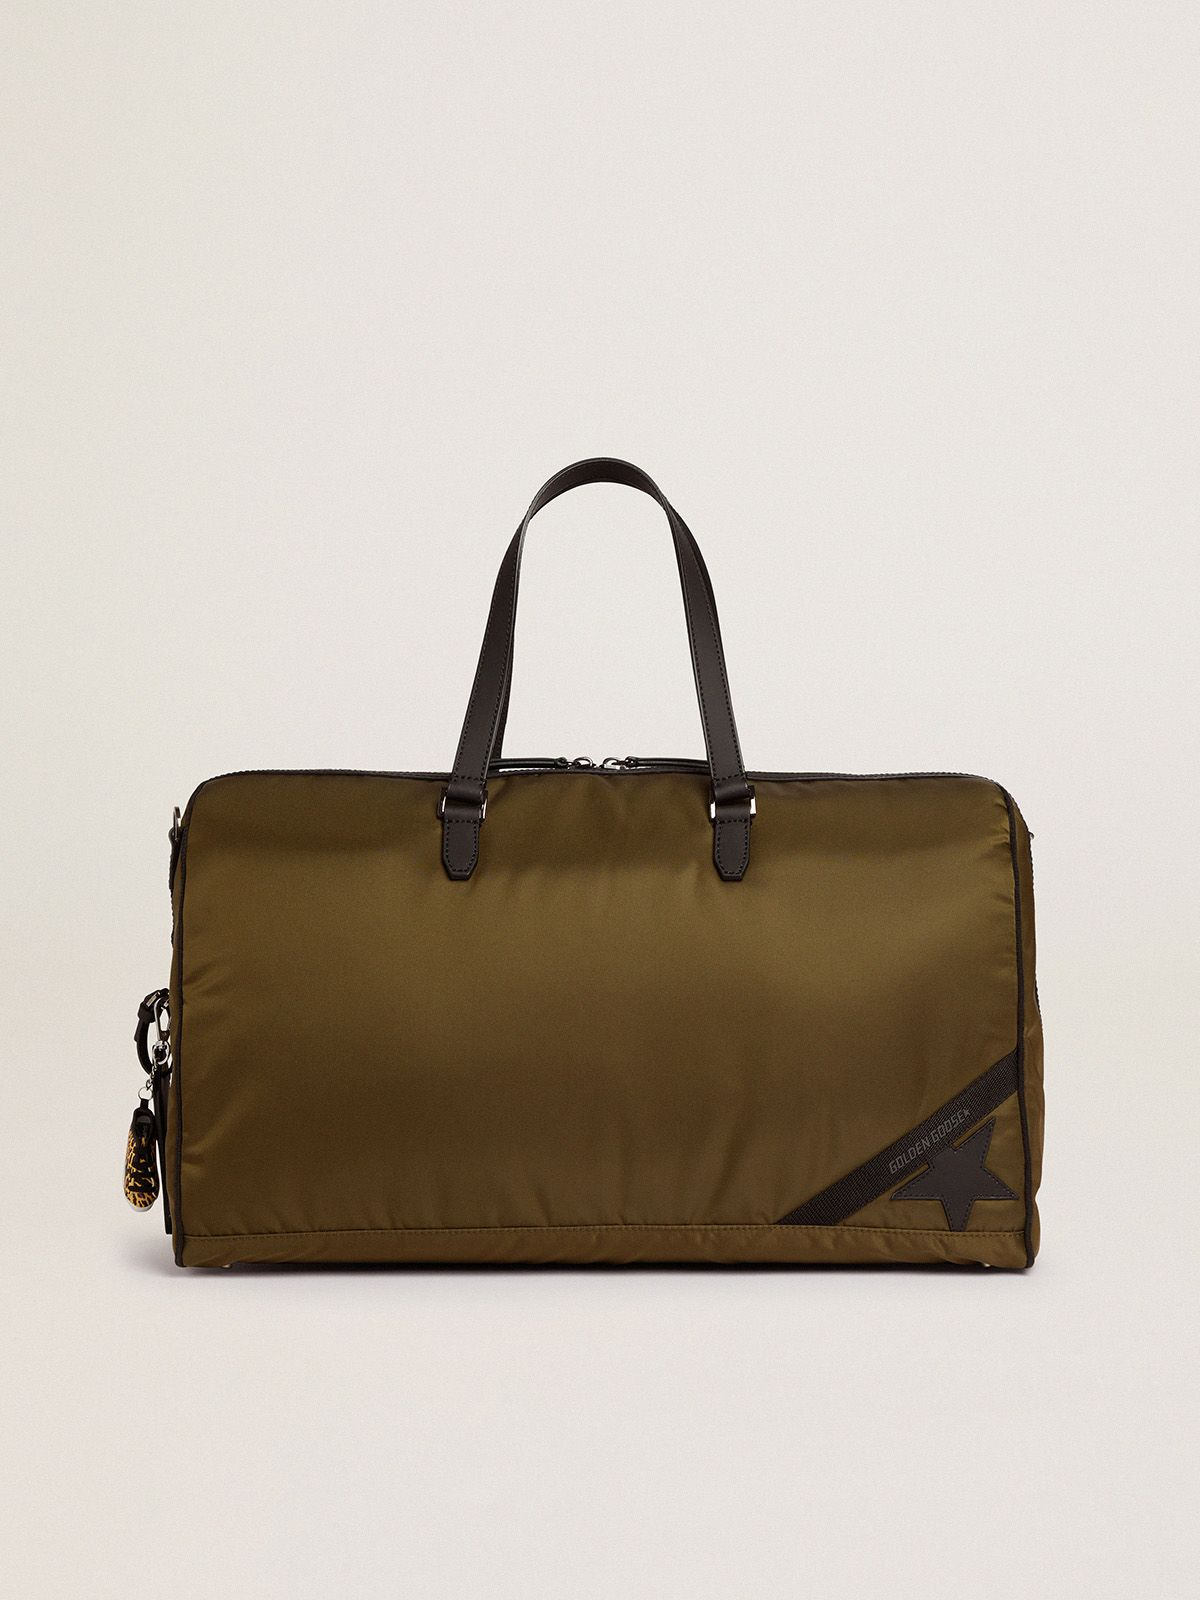 Journey Duffle Bag in nylon verde militare